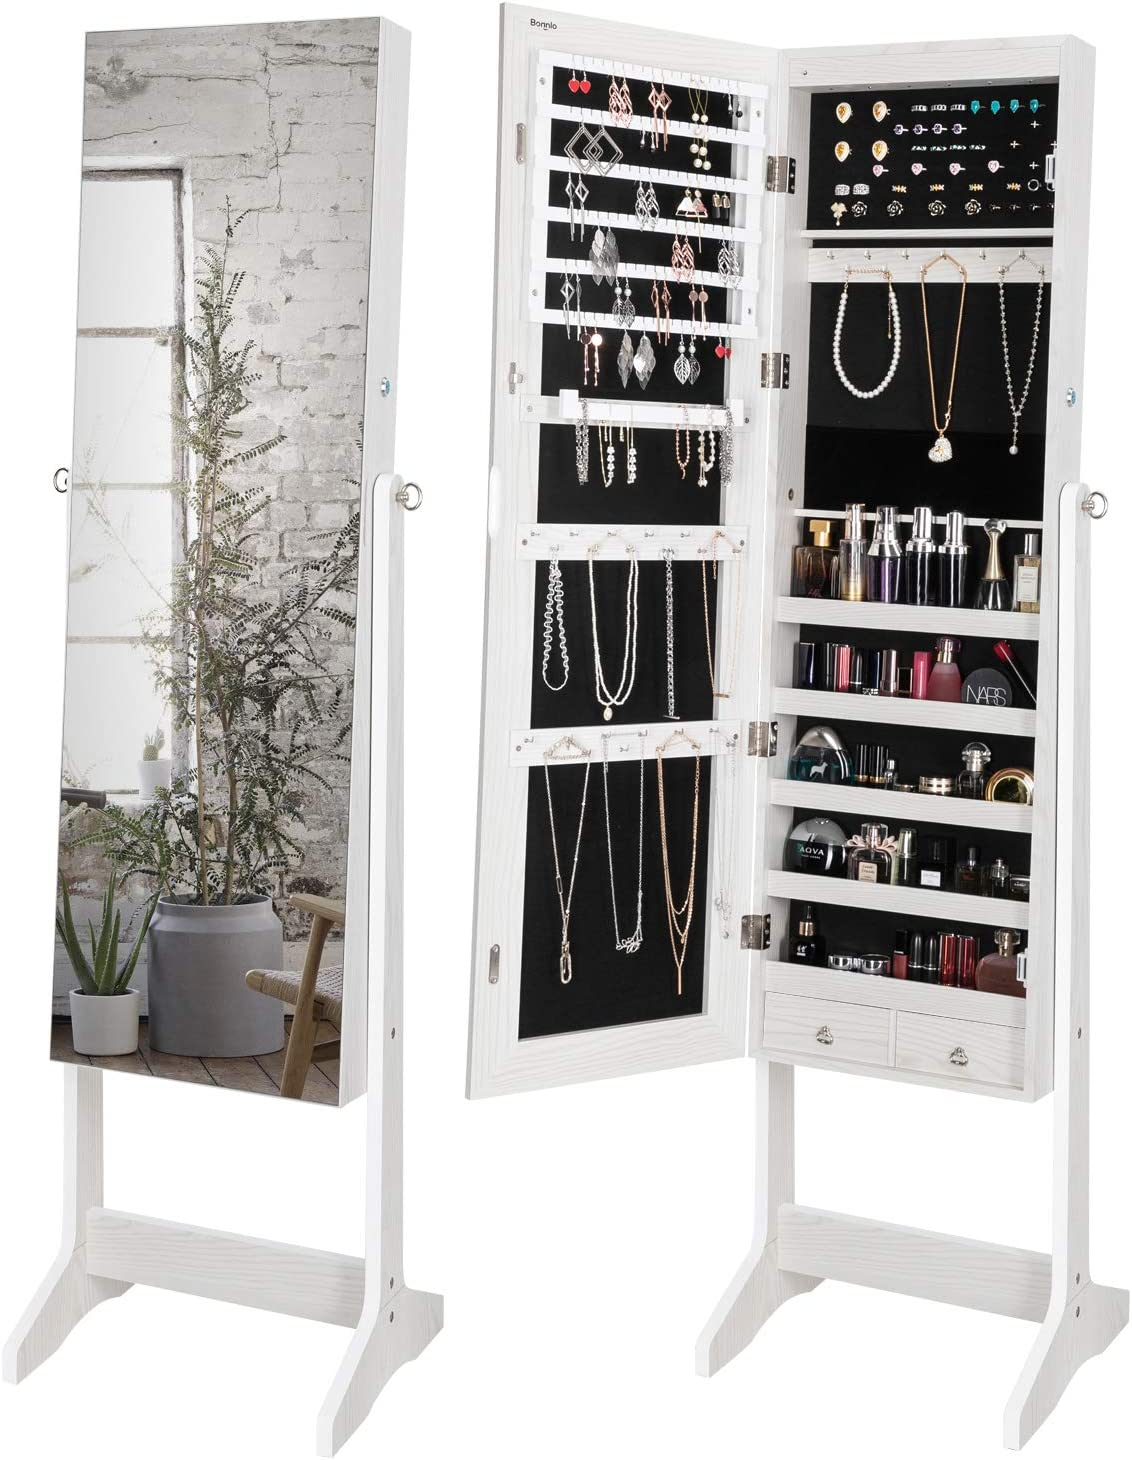 Bonnlo Upgraded Jewelry Armoire with Max 80% OFF LED Lockable Jewe 6 Lights Year-end annual account